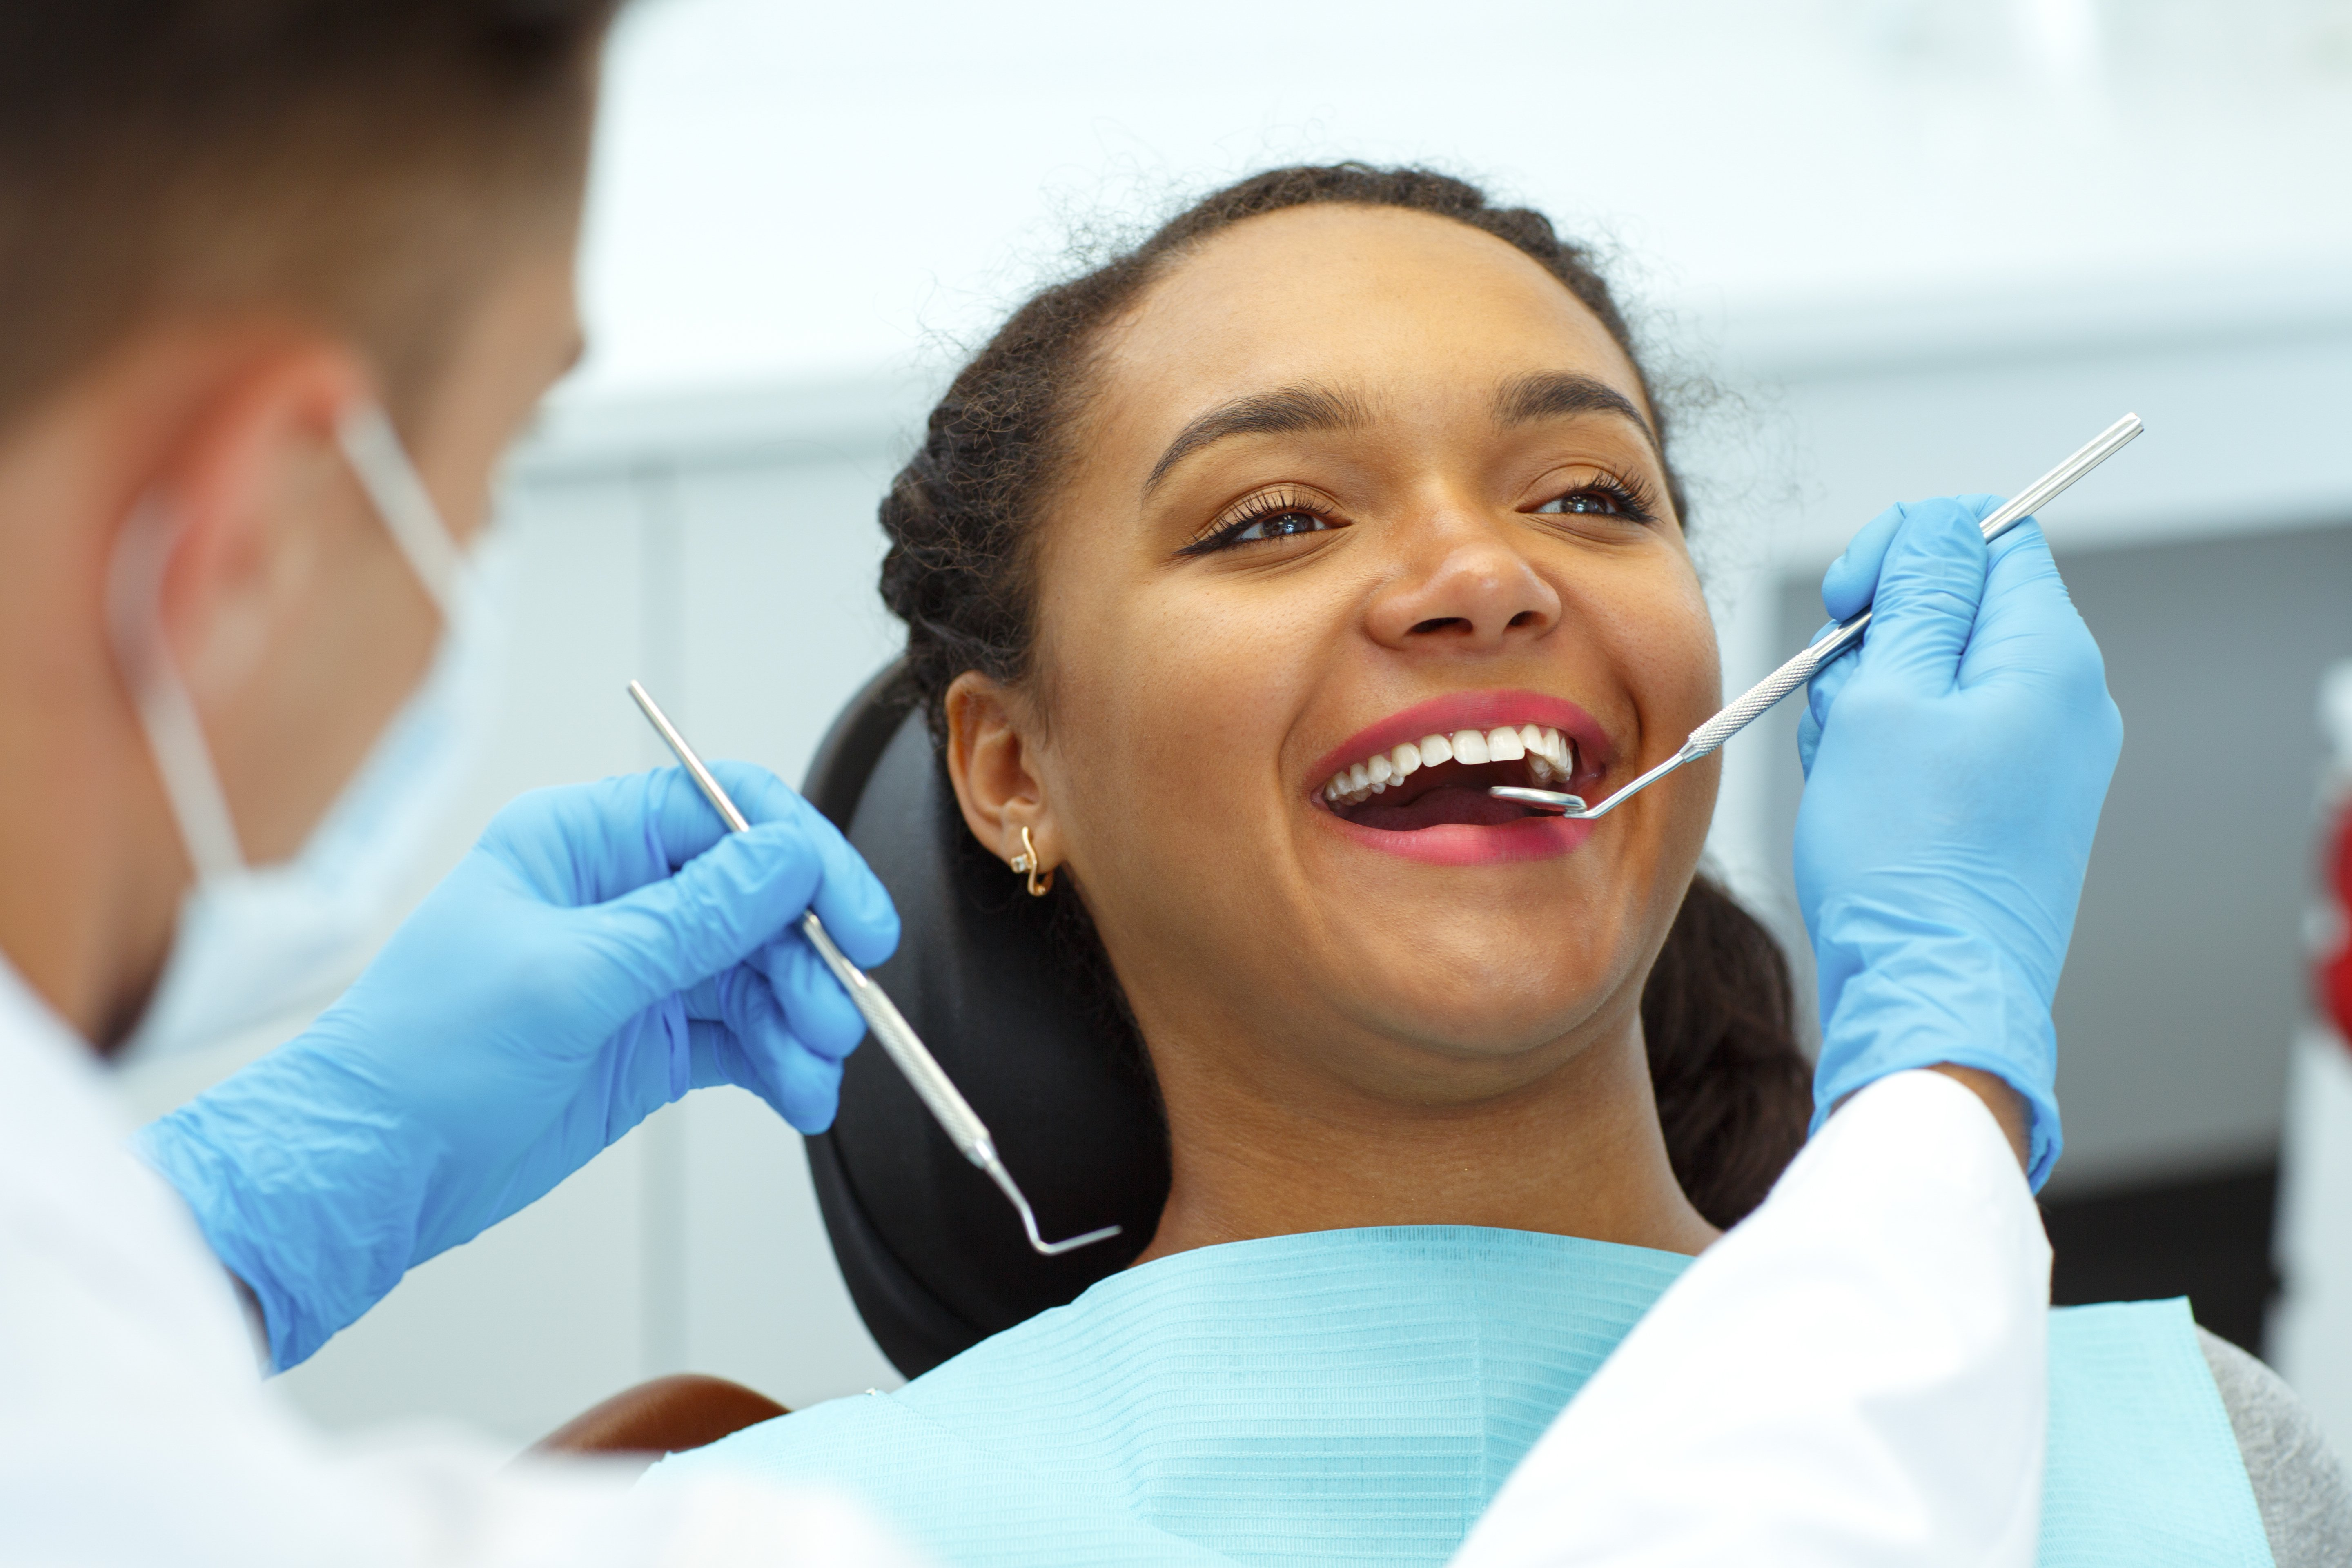 Superior quality same day dentistry that prioritizes your health